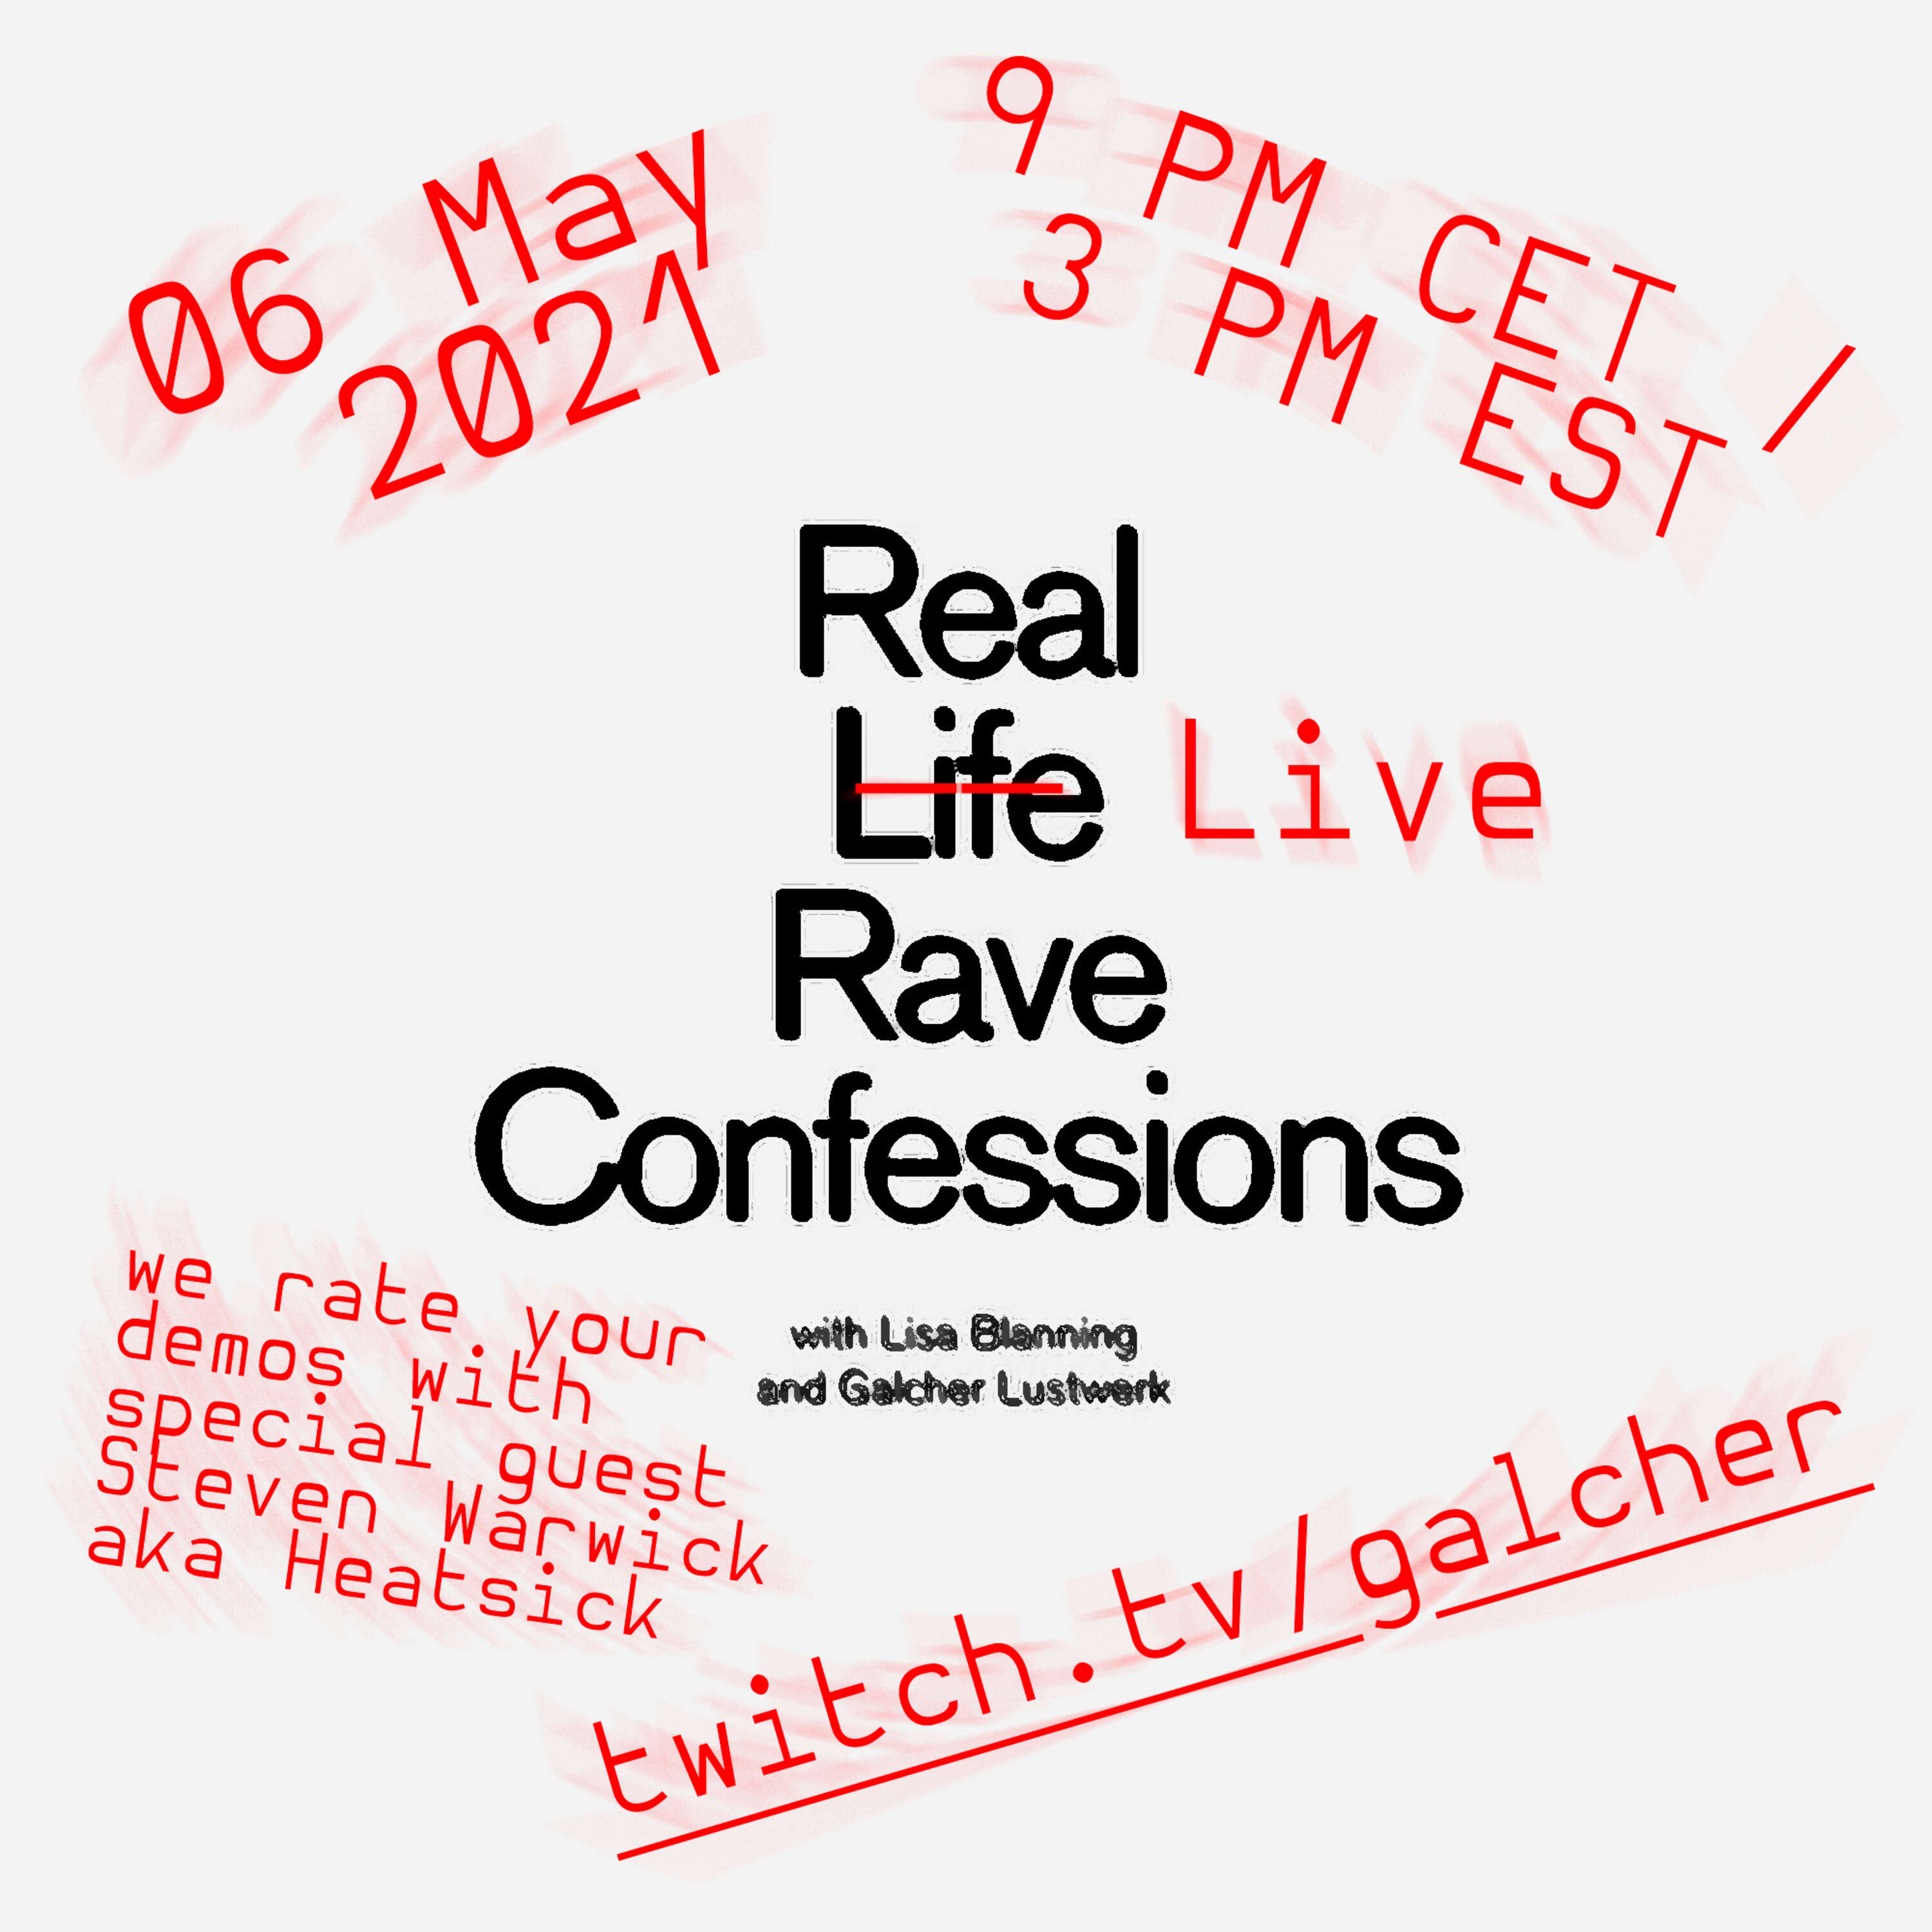 Trailer: Real Life Rave Confessions with special guest Steve Warwick